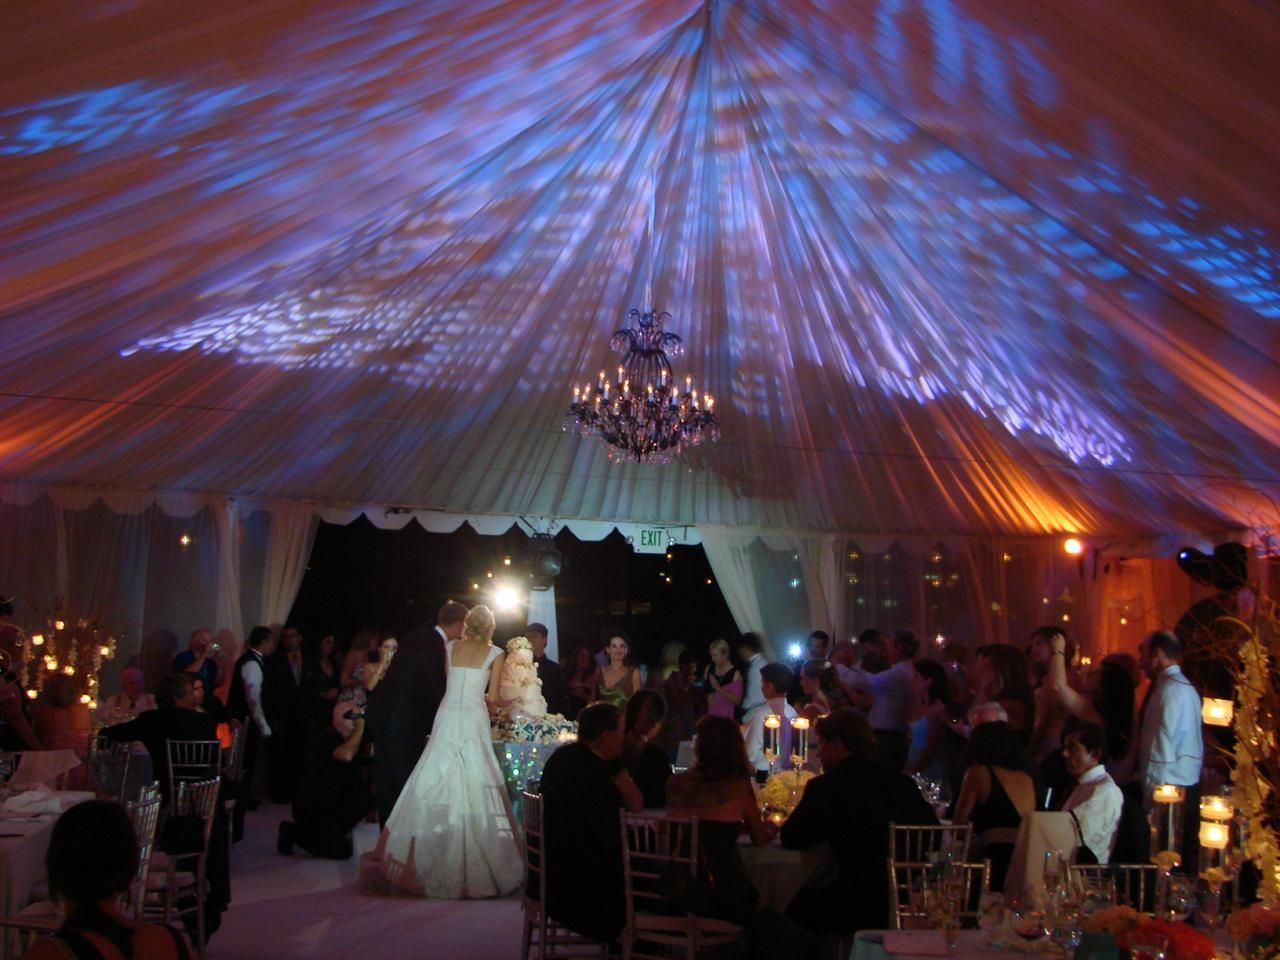 Outdoor Weddings & Outdoor Weddings | Wedding tent decorations Weddings and Tent ...